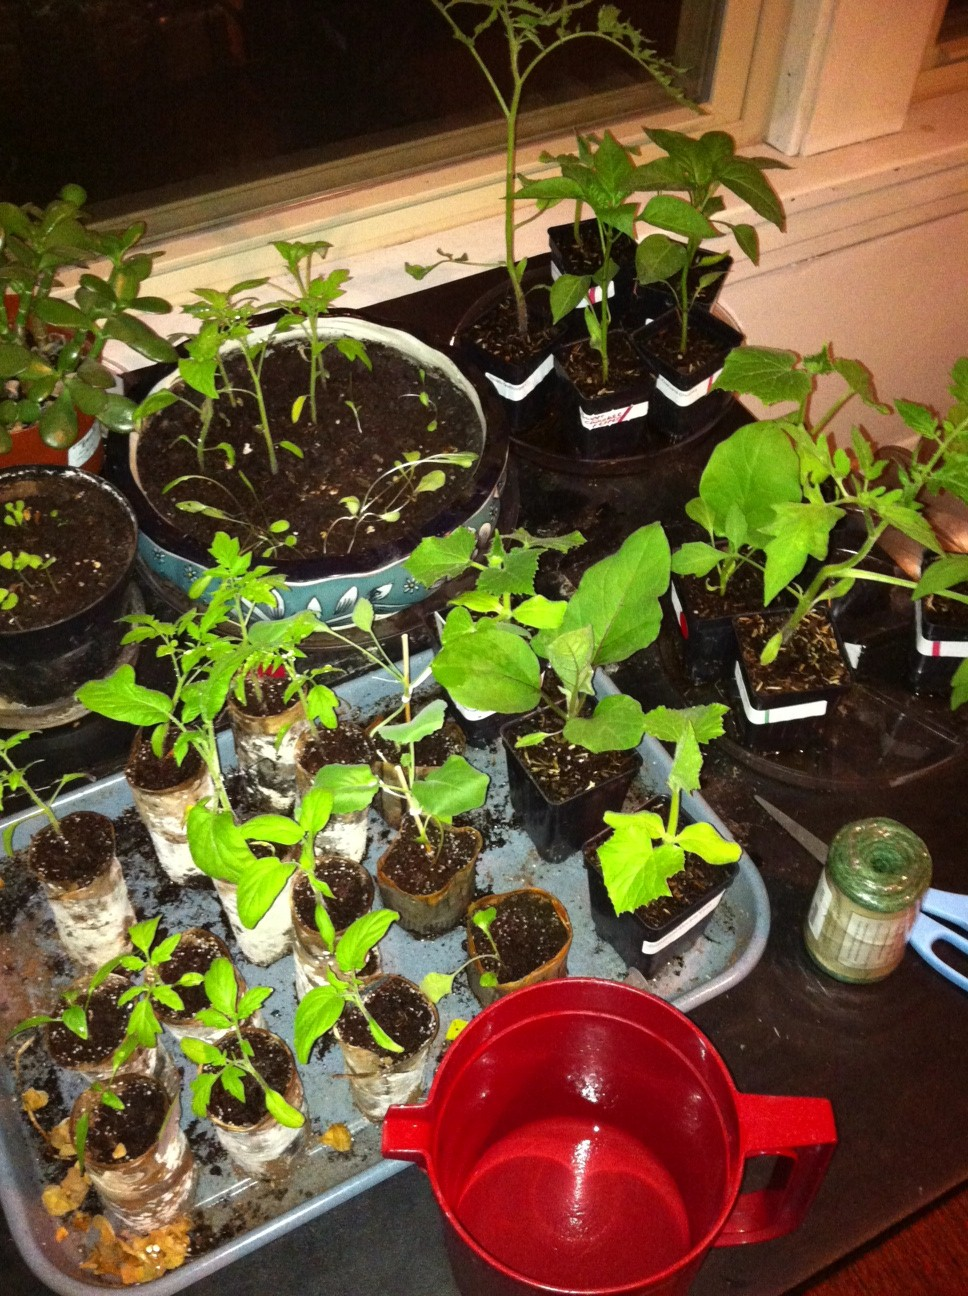 Check out our seedlings!